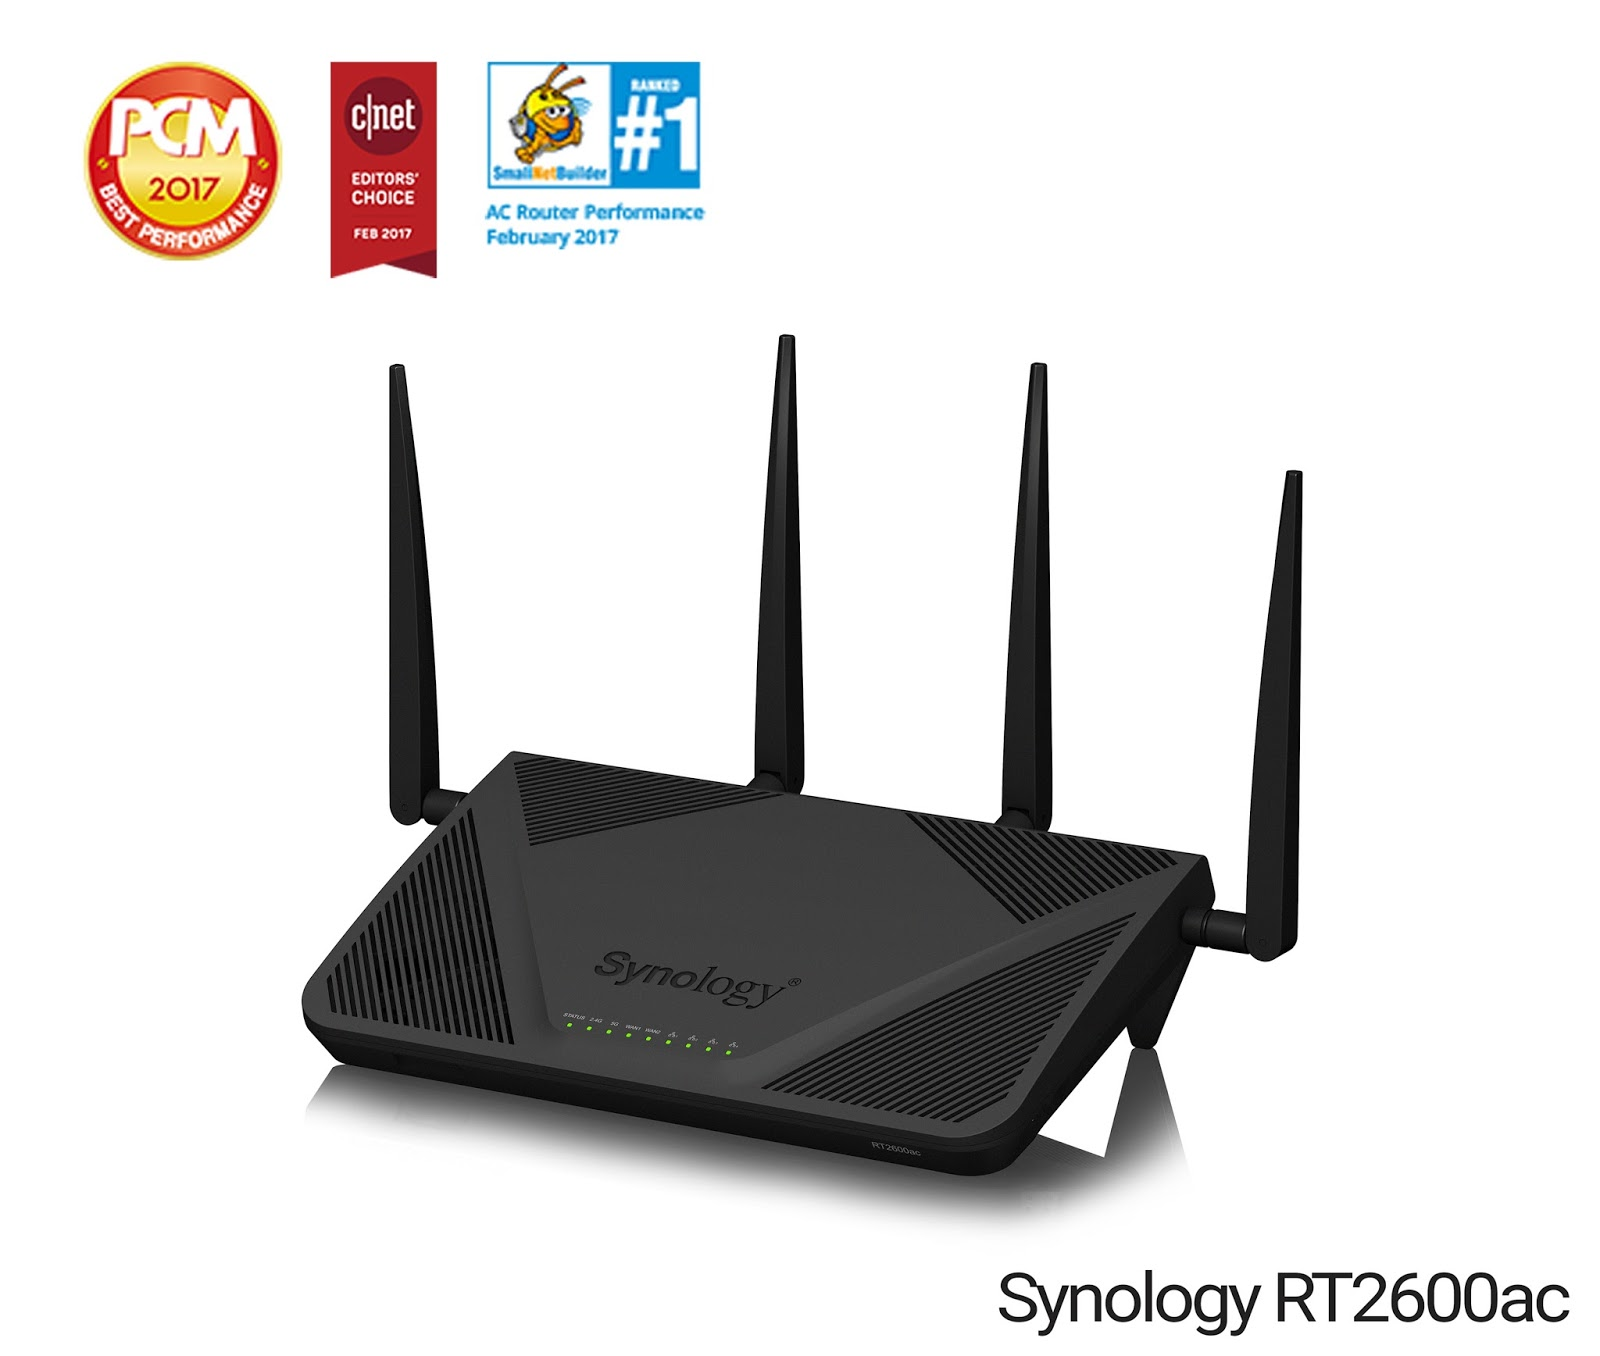 Synologys router rt2600ac delivers secure fast speed connectivity april 18 2018 synologys rt2600ac router named best wireless router of 2017 by cnet and best performing ac router by smallnetbuilder solutioingenieria Gallery